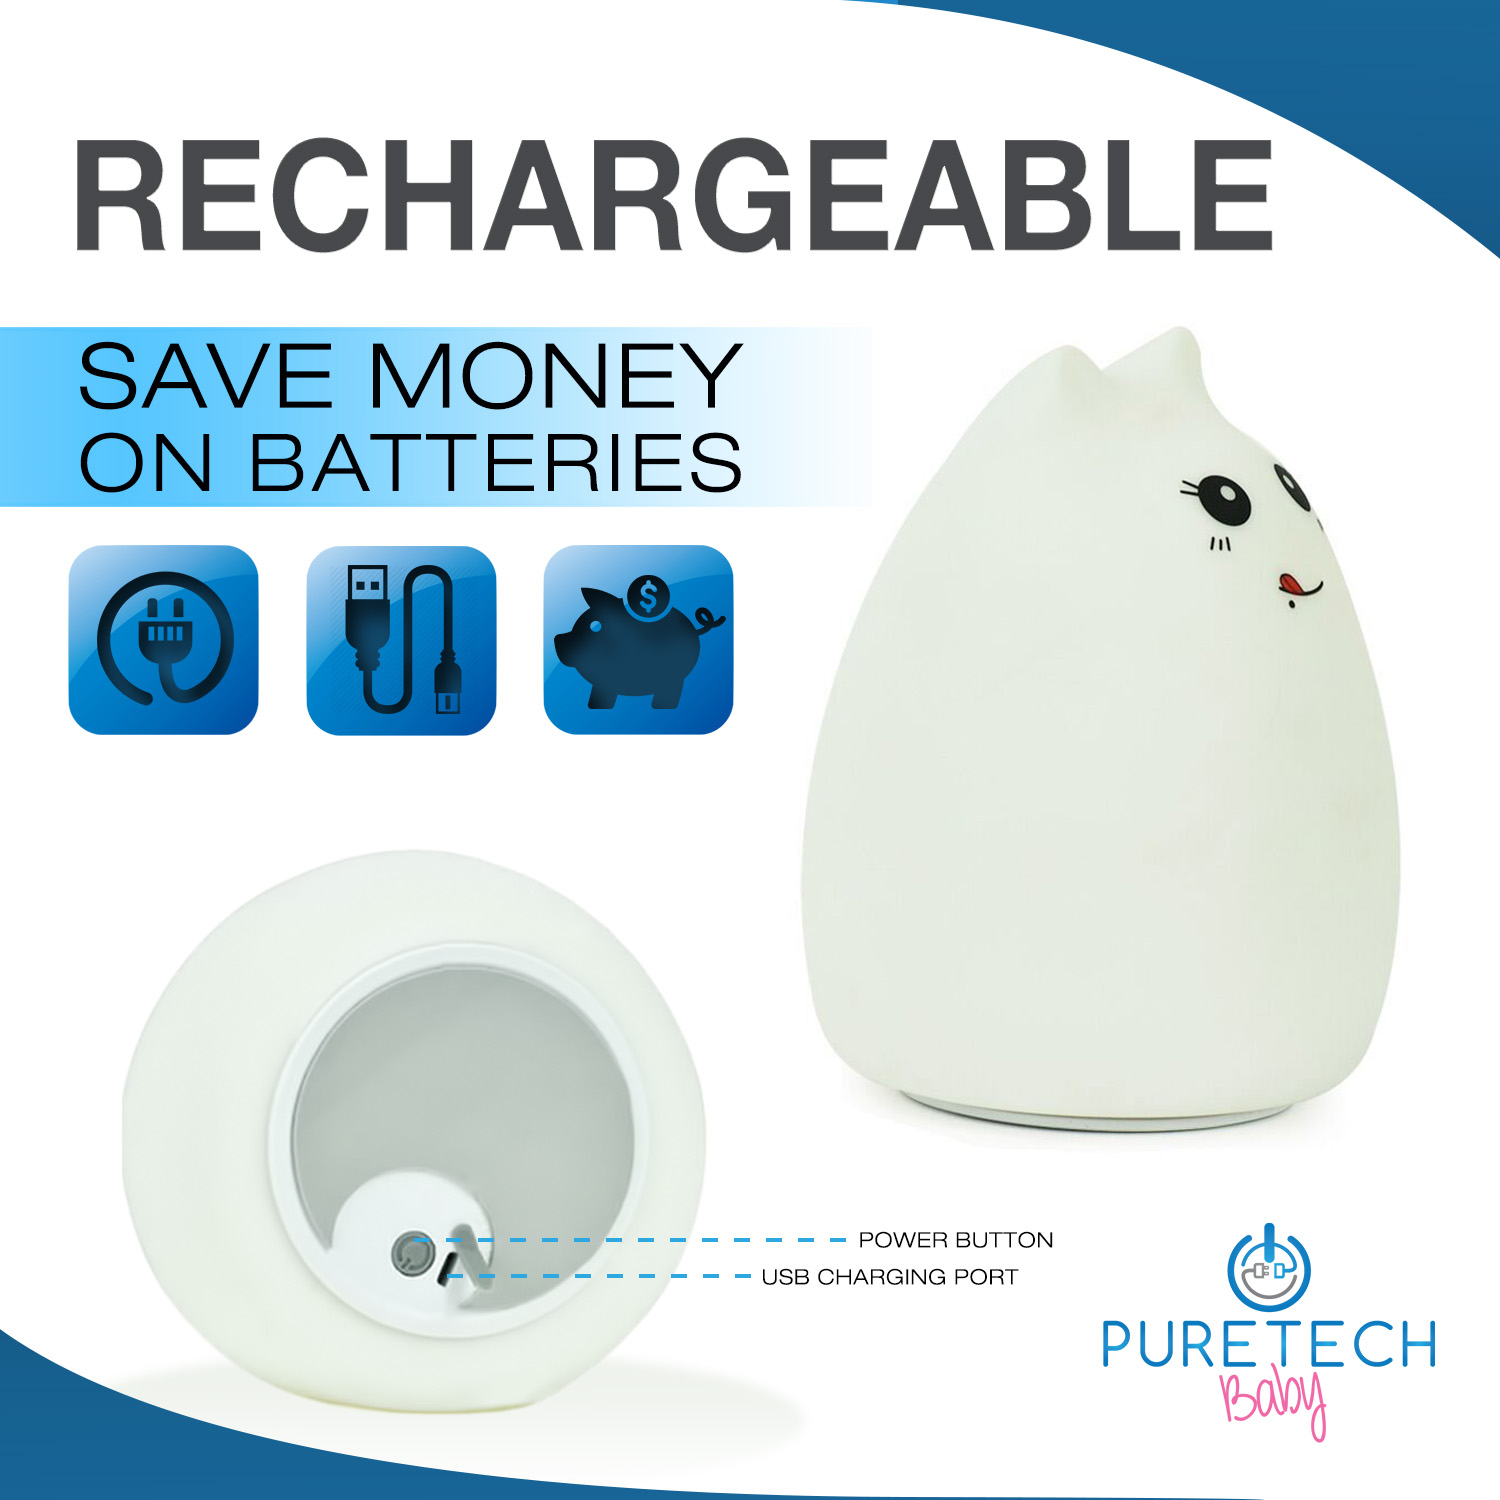 RECHARGEABLE — Does not rely on batteries.